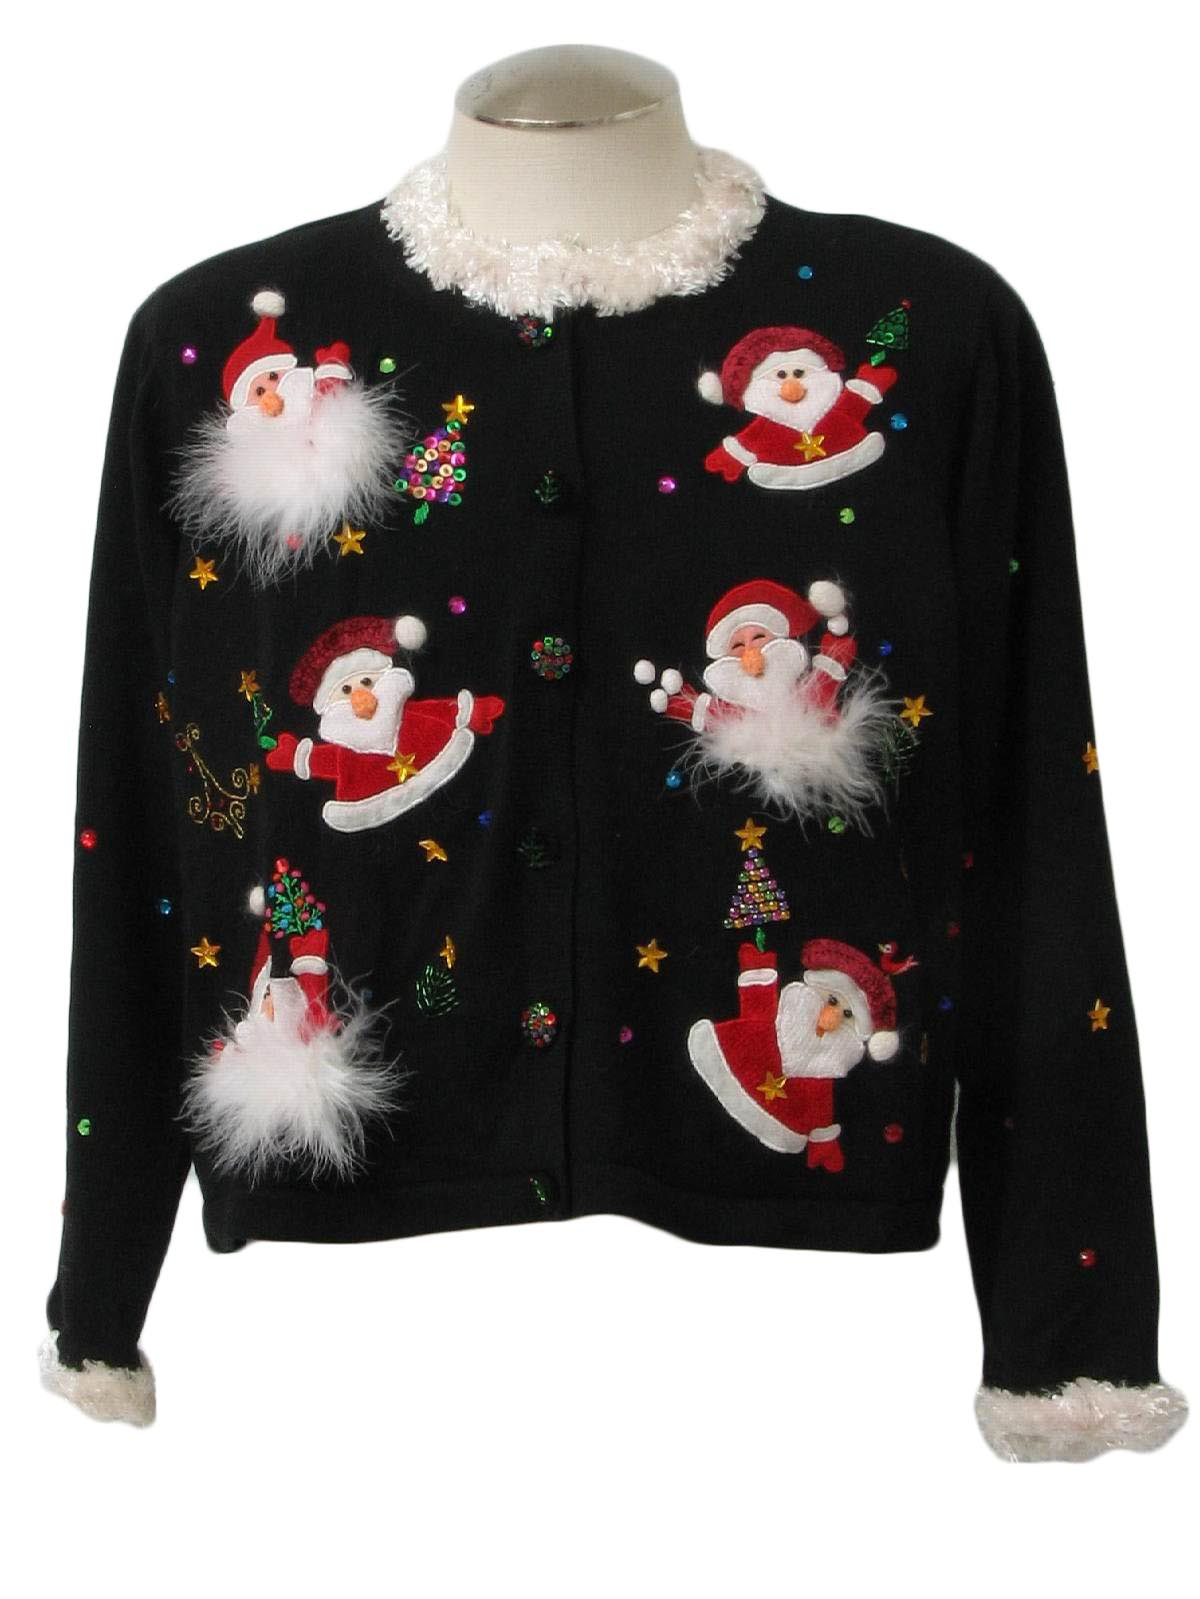 Womens Ugly Christmas Sweater ,Berek, Womens black background ramie cotton  blend button front longsleeve ugly Christmas sweater, white plush acrylic  faux